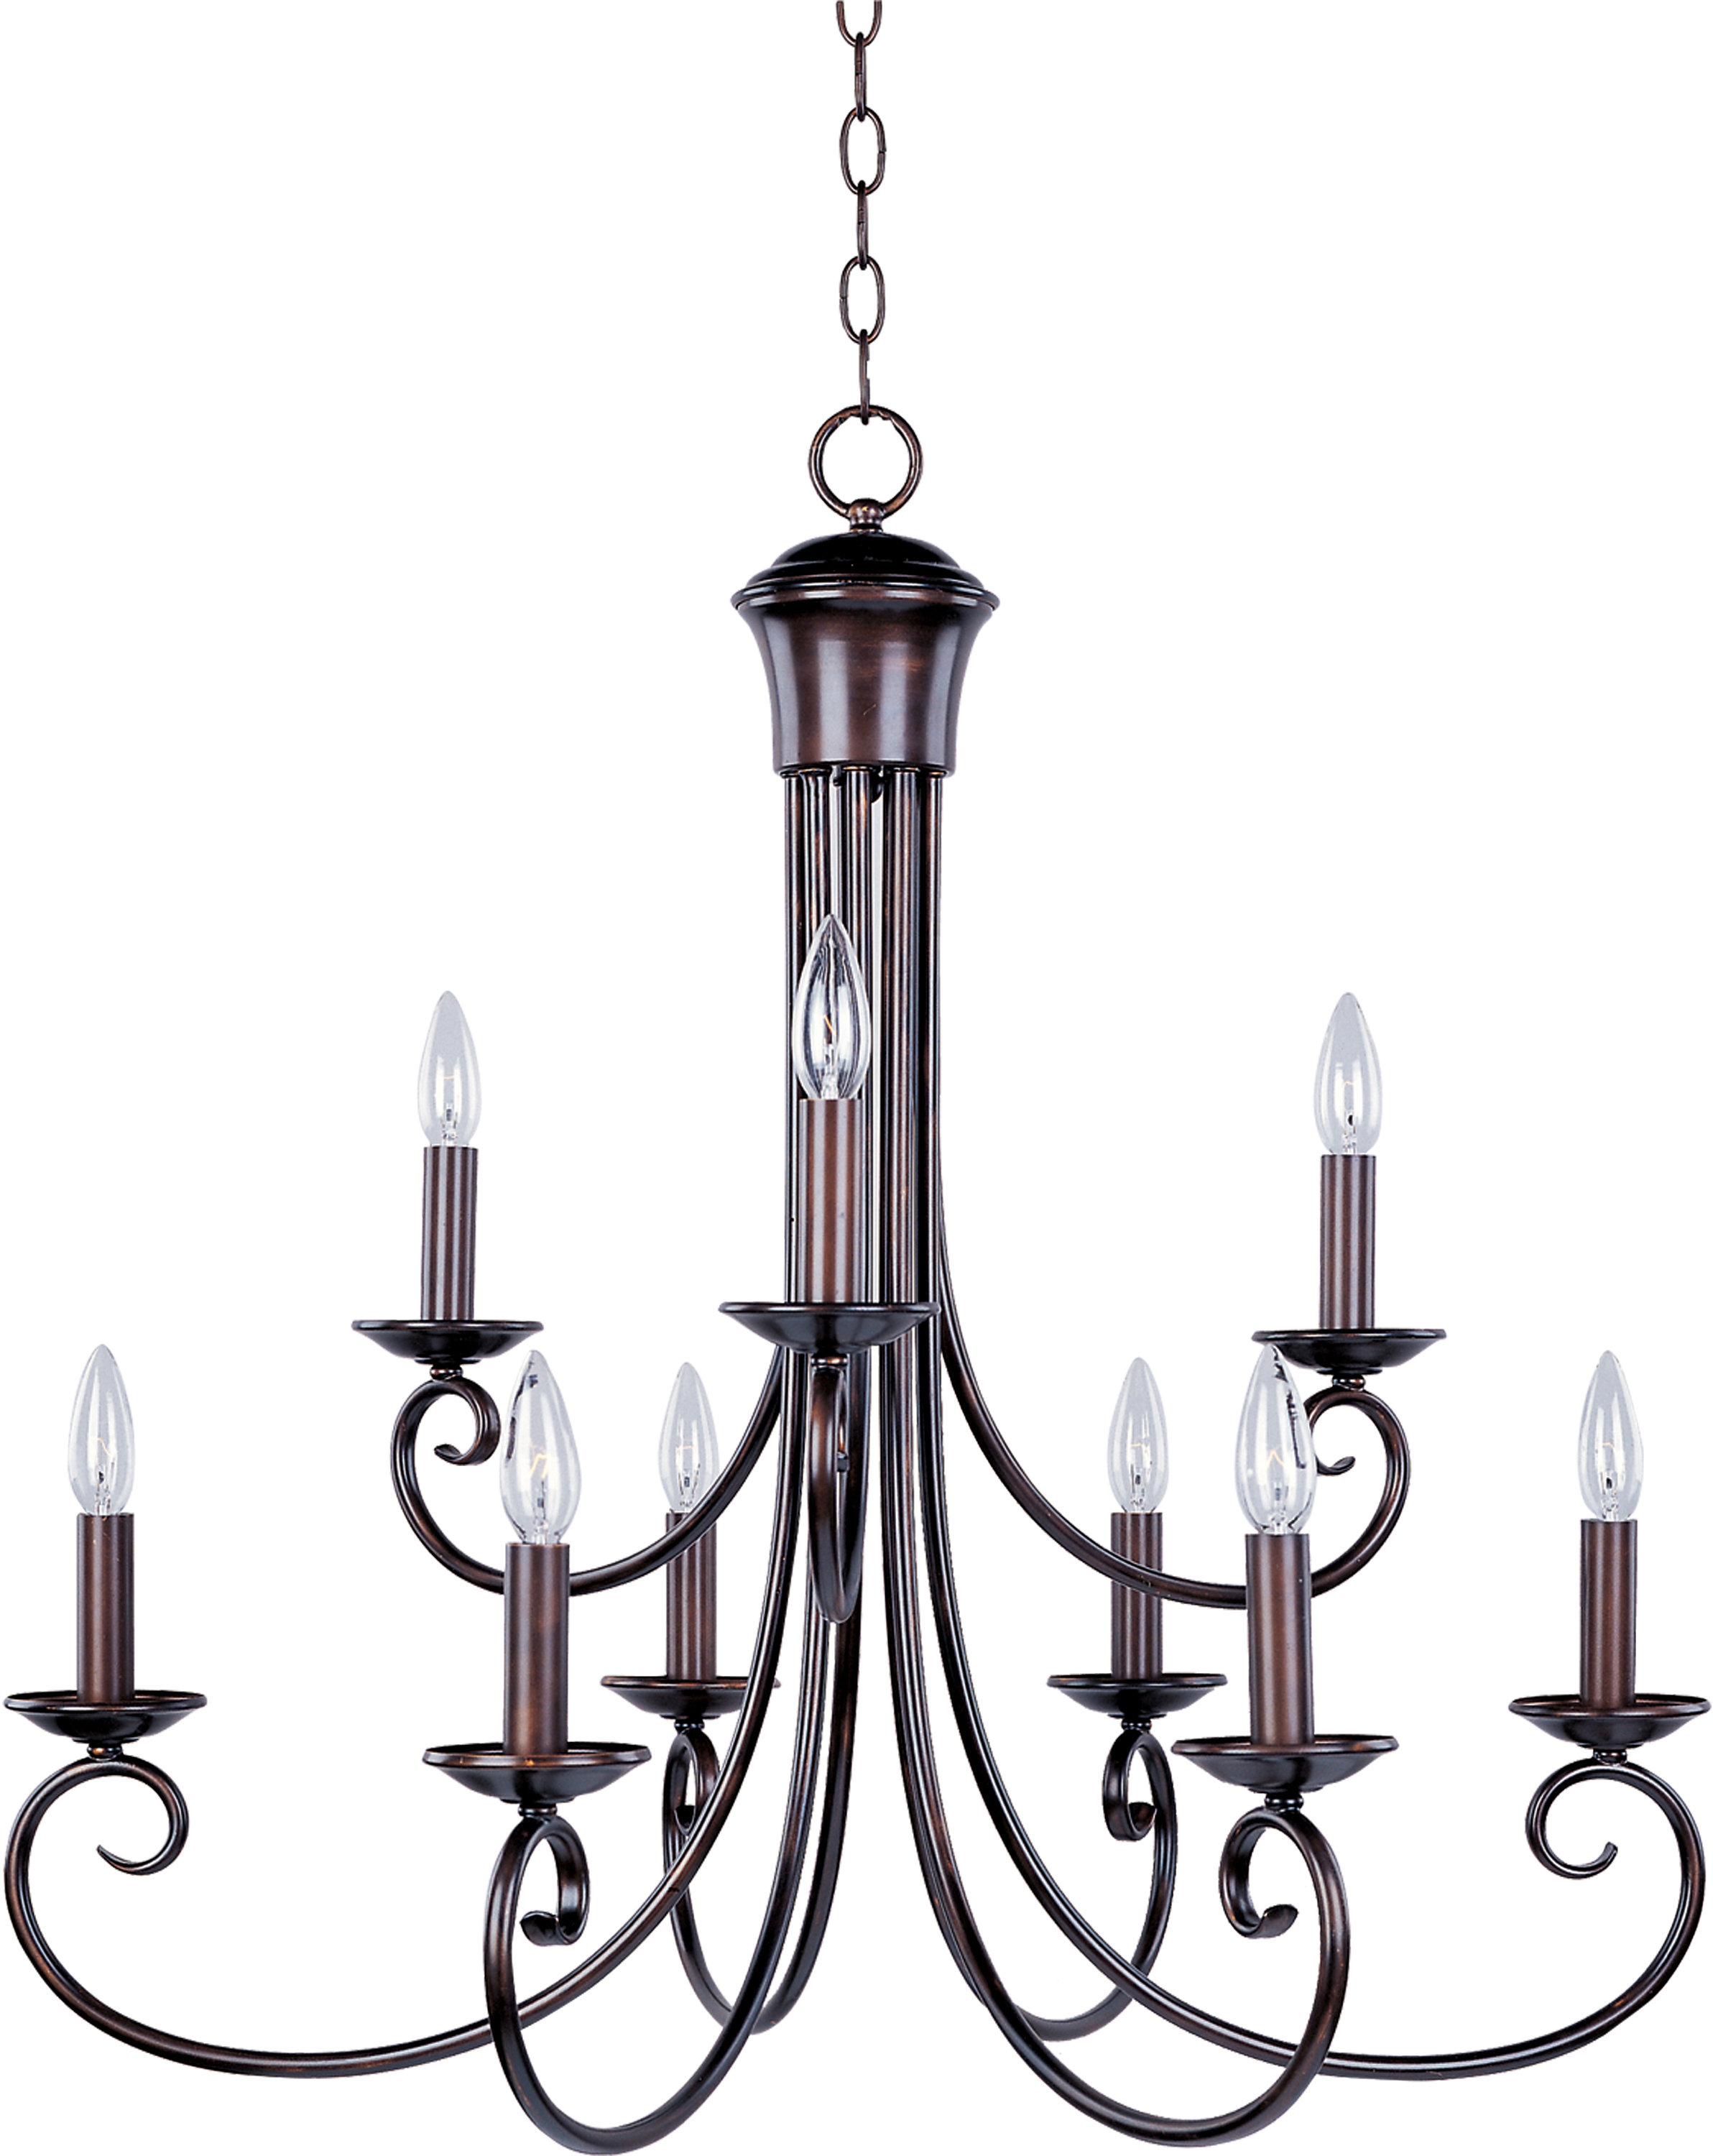 2020 Camilla 9 Light Candle Style Chandeliers With Regard To Charlton Home Kenedy 9 Light Candle Style Chandelier (View 17 of 20)